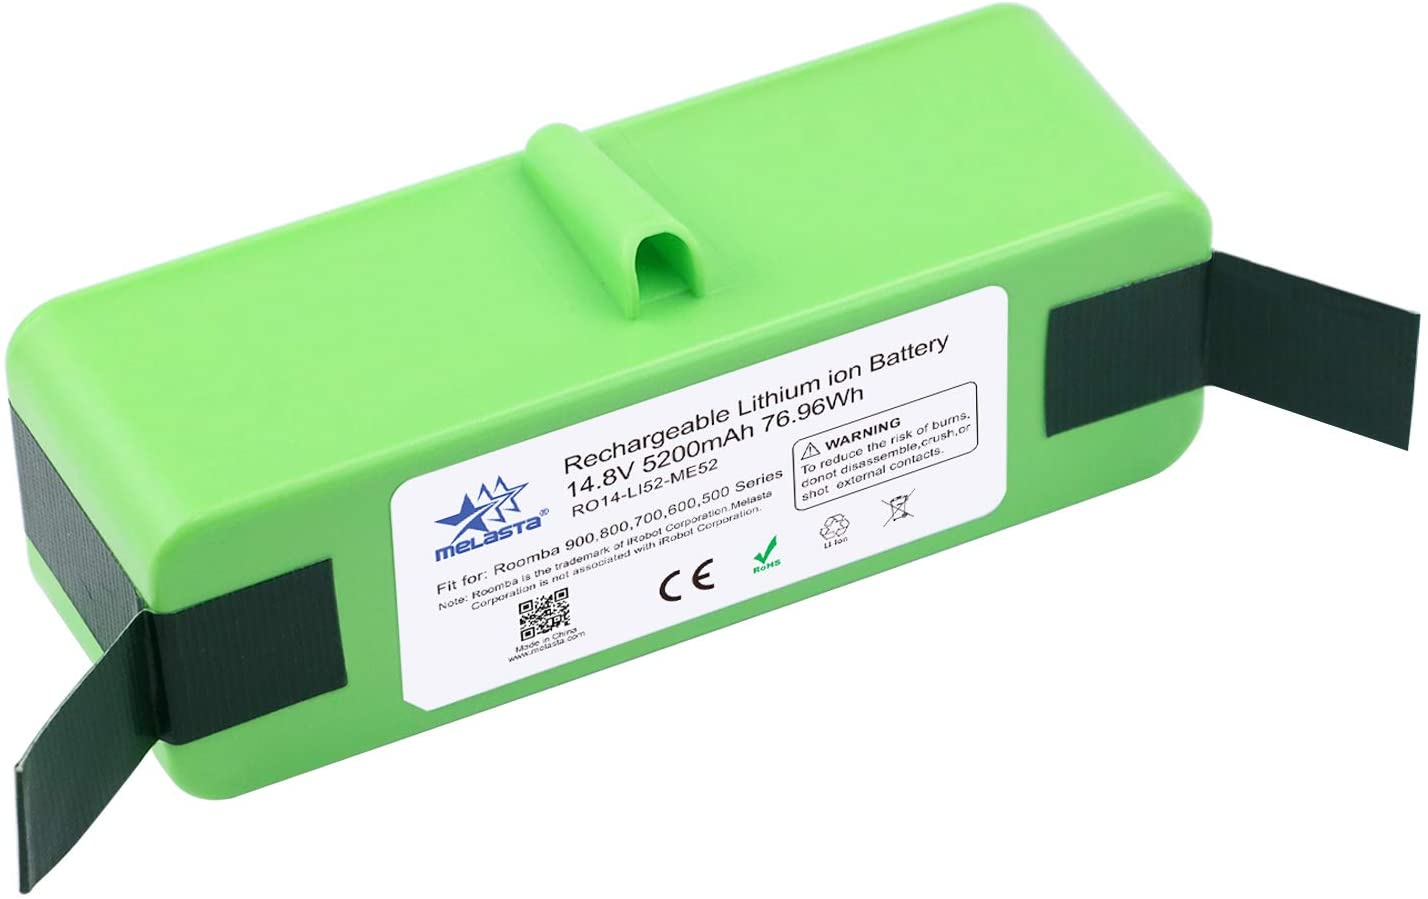 MELASTA 14.8V 5200mAh Lithium ion Battery Replacement for iRobot Roomba 980 690 960 985 695 680 685 652 665 670 655 650 770 801 805 850 877 870 880 890 860 895 891 (UL&CE Certification Battery Cells)